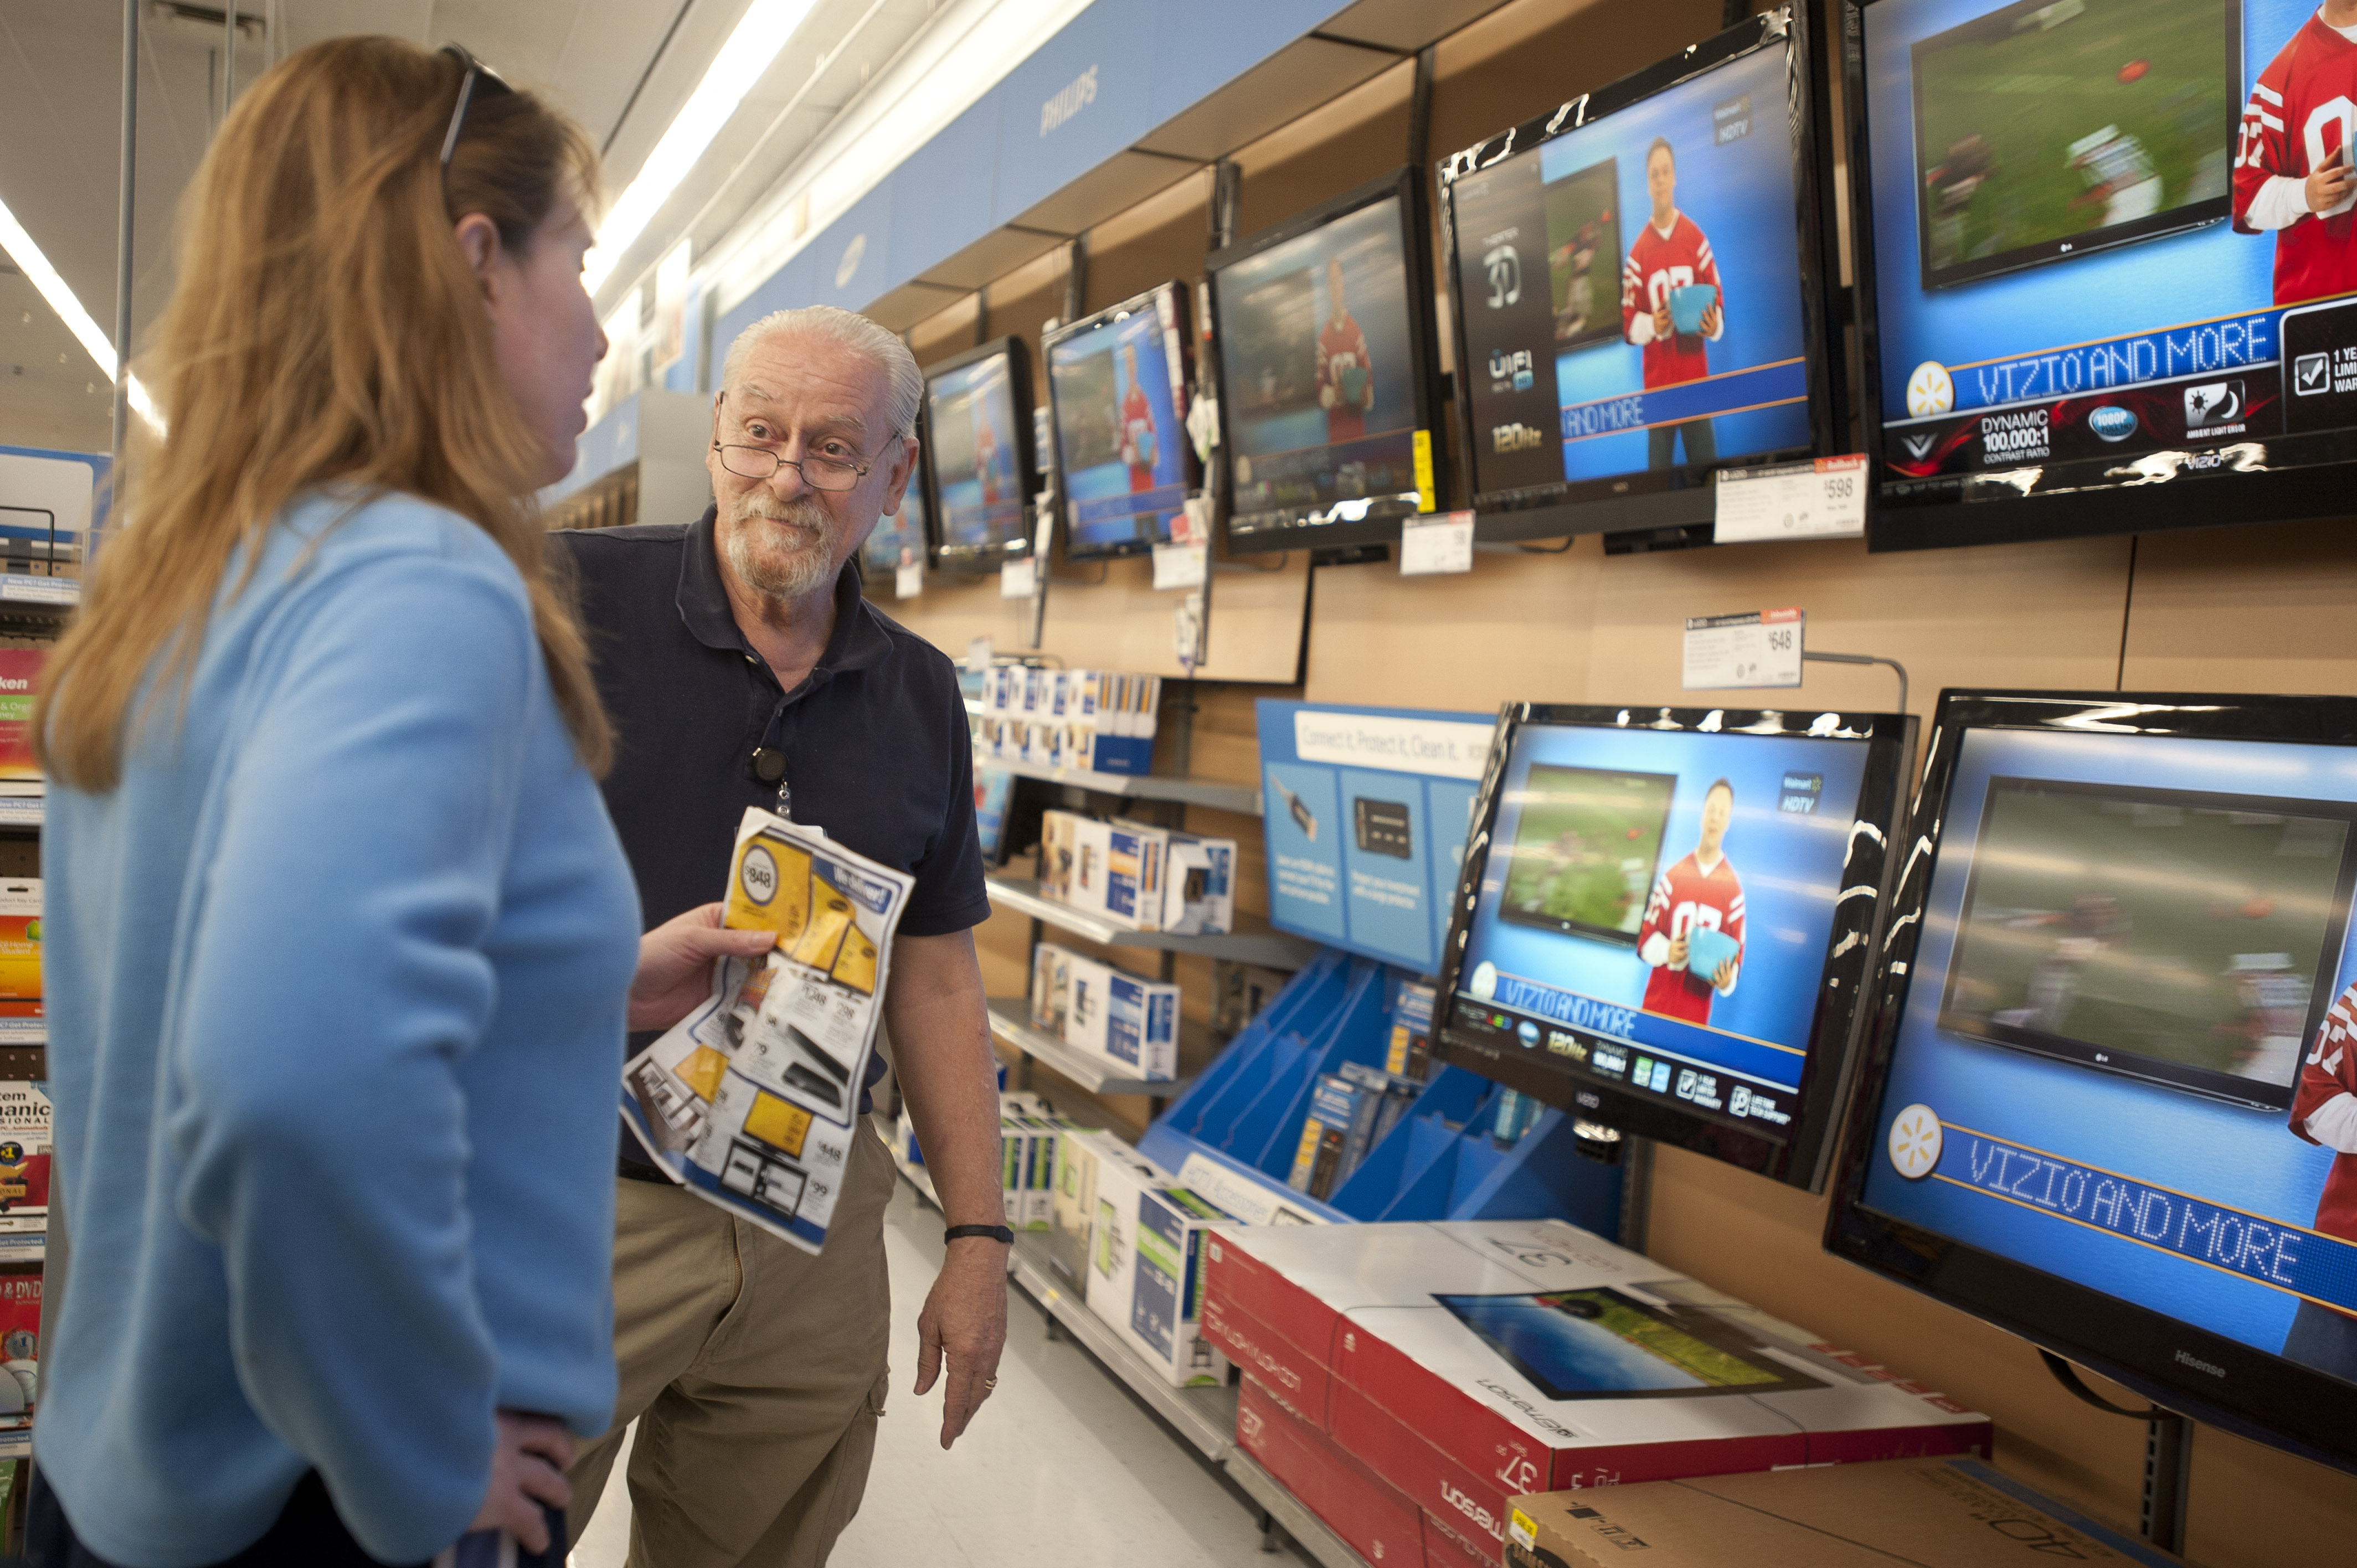 walmart customer service Customer service contact us faqs legal shop walmartcom  offer valid for first order only for walmart grocery online service, at participating stores minimum .